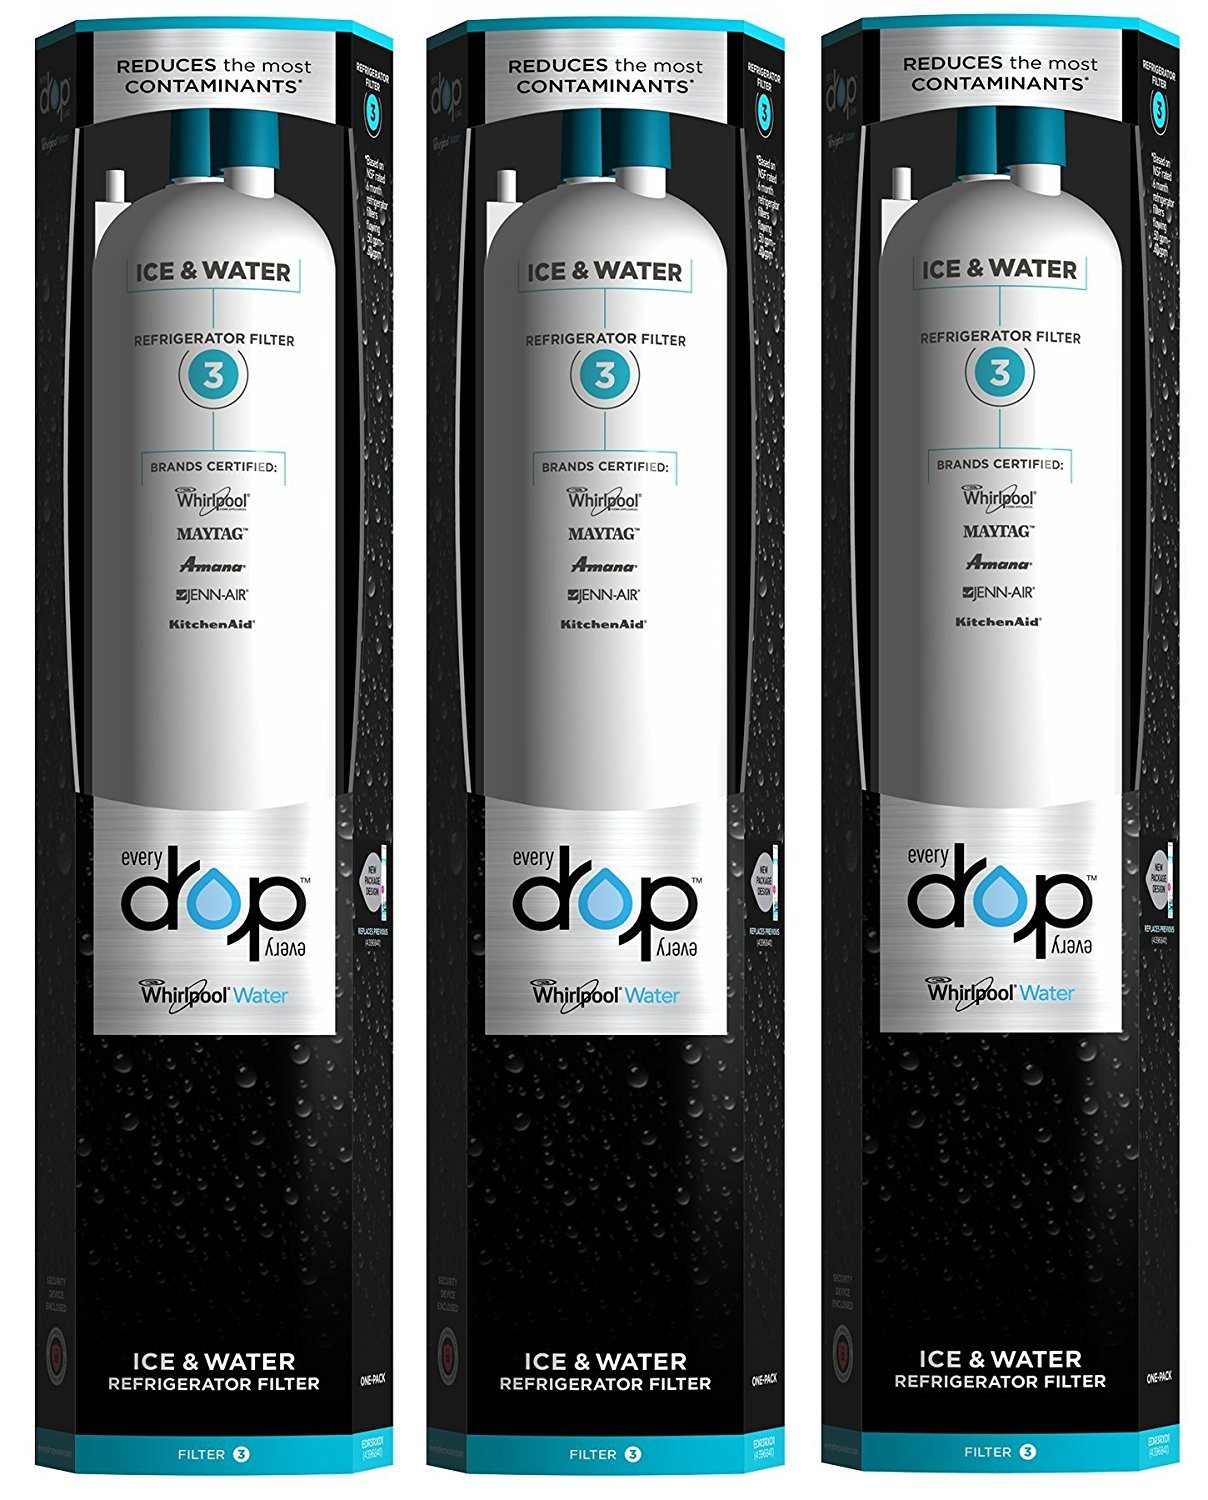 (3 Pack)Refrigerator Water Filter Replacement Whirlpool Fliter 3 EDR3RXD1 For EveryDrop 469930 4396841, 4396710 Refrigerator Water Filter